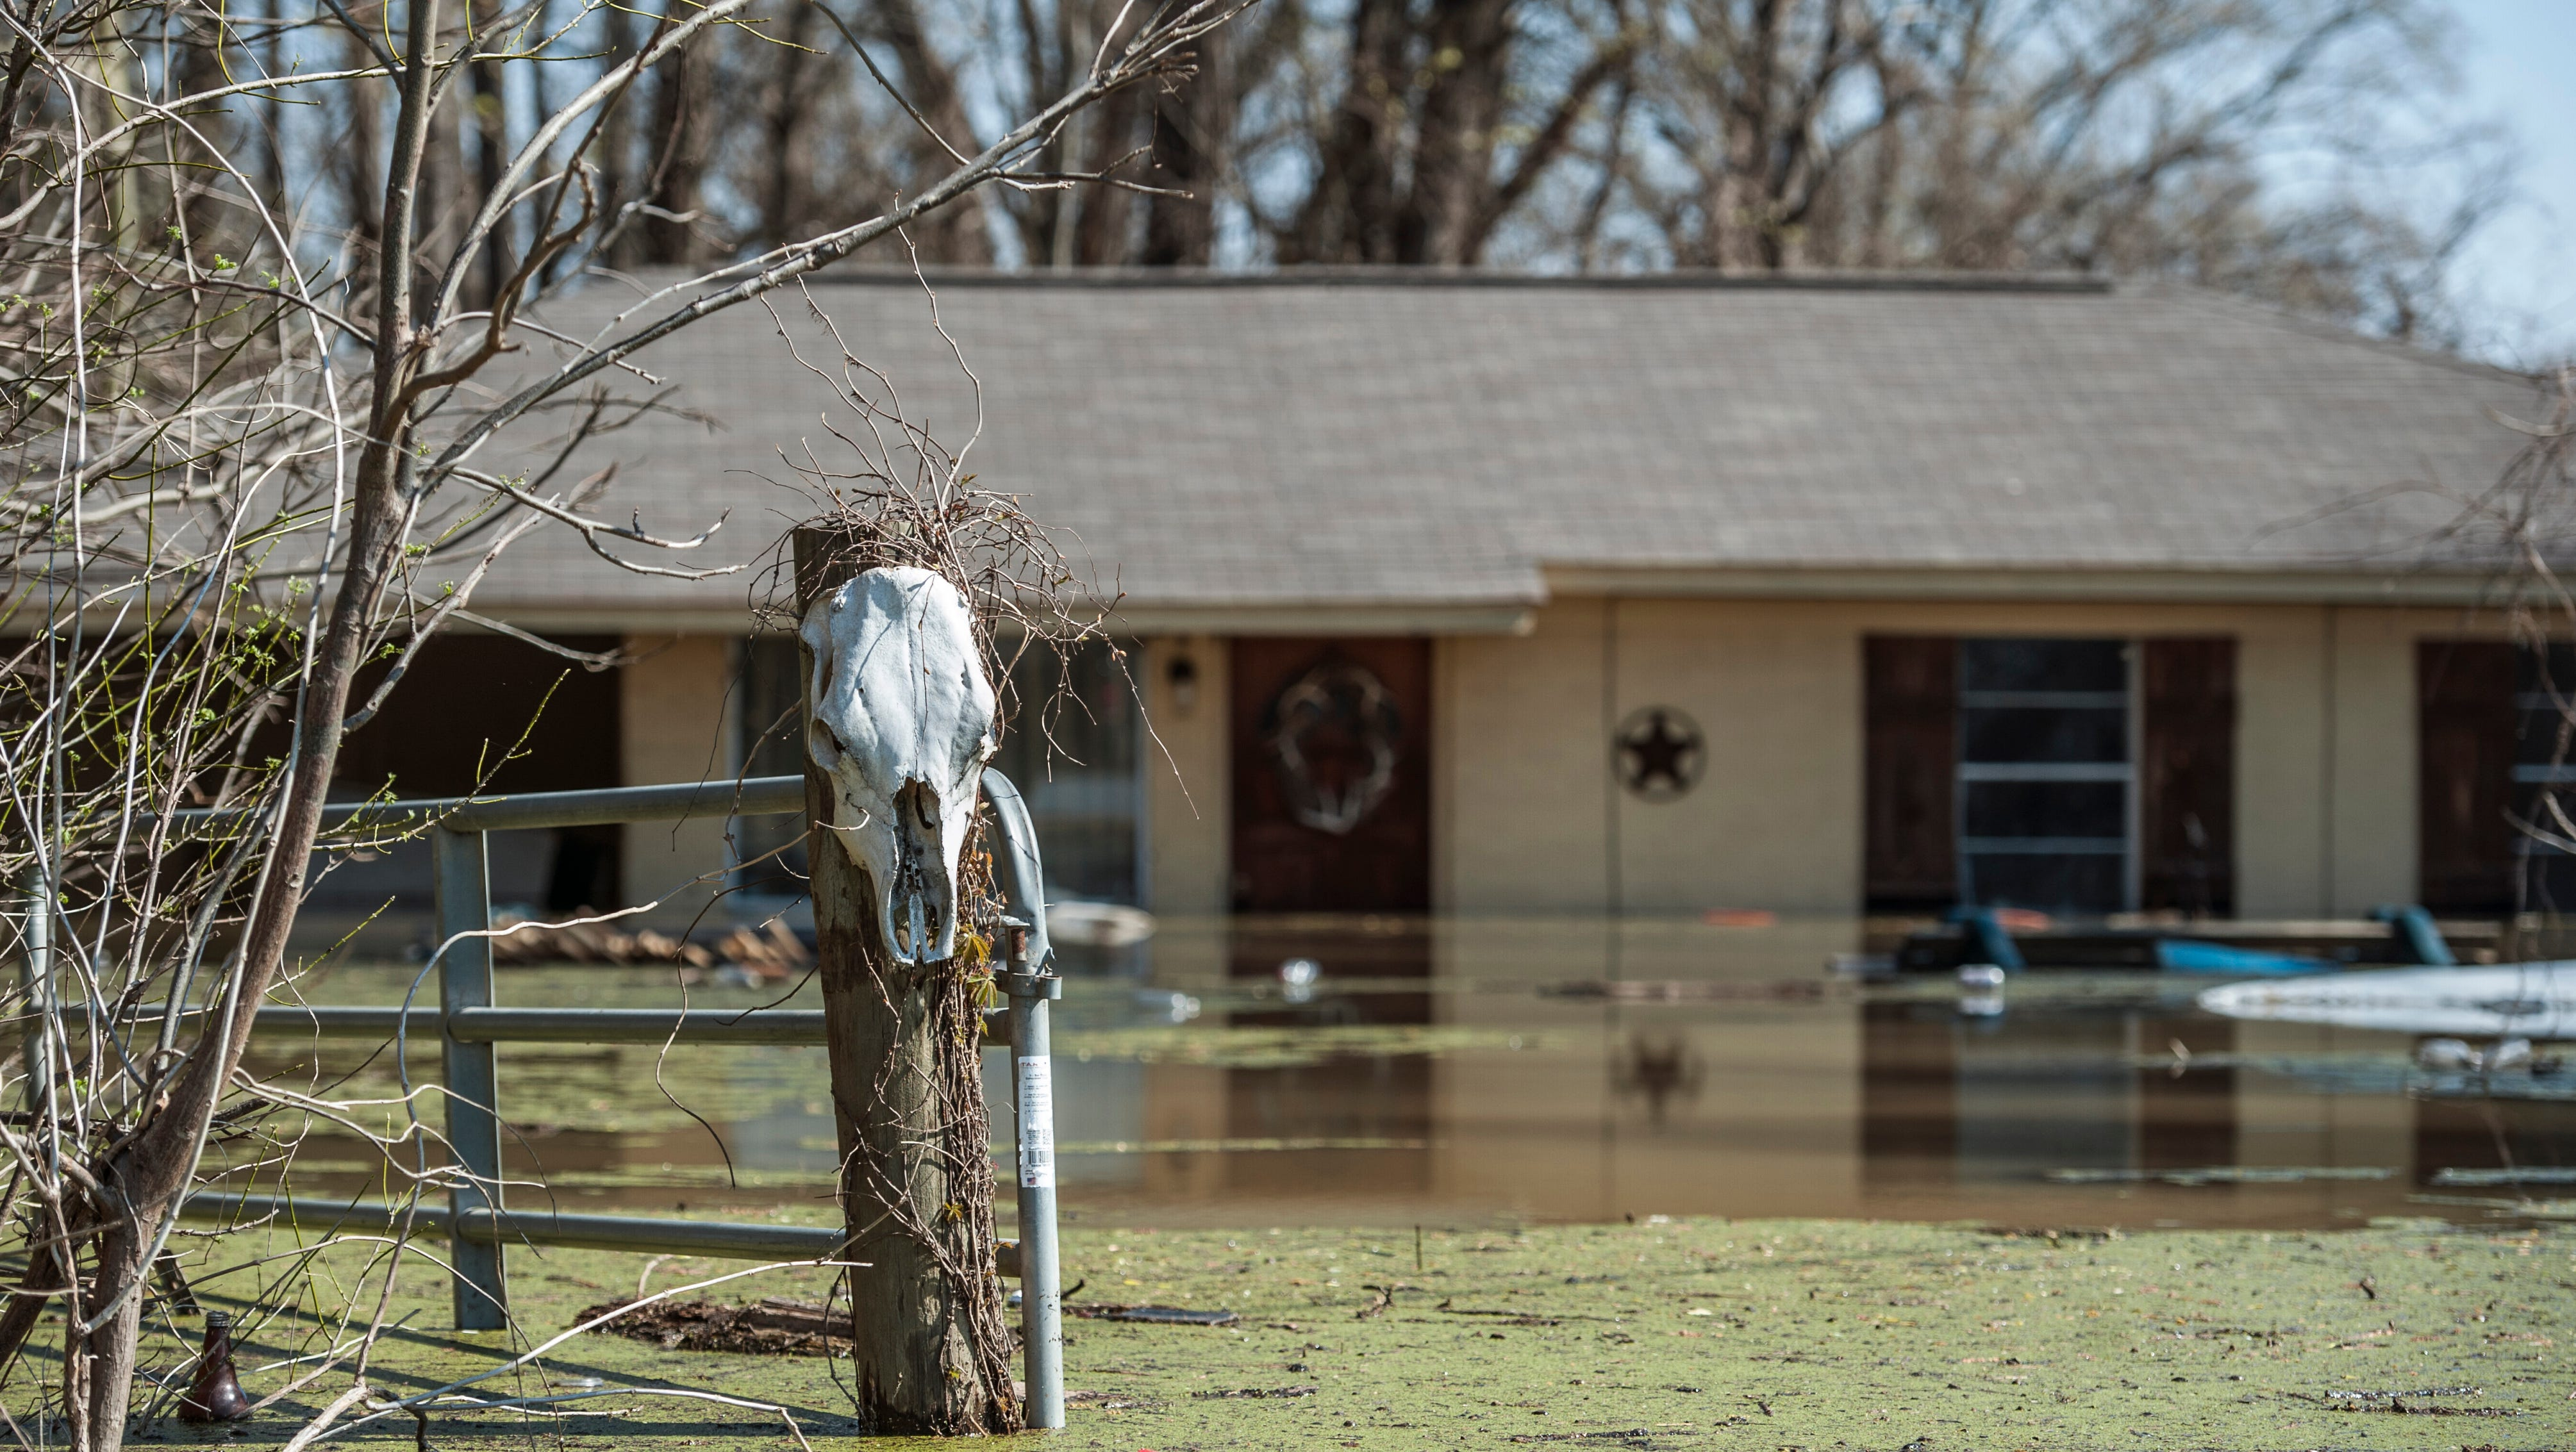 Mississippi flooding takes toll; state of emergency declared